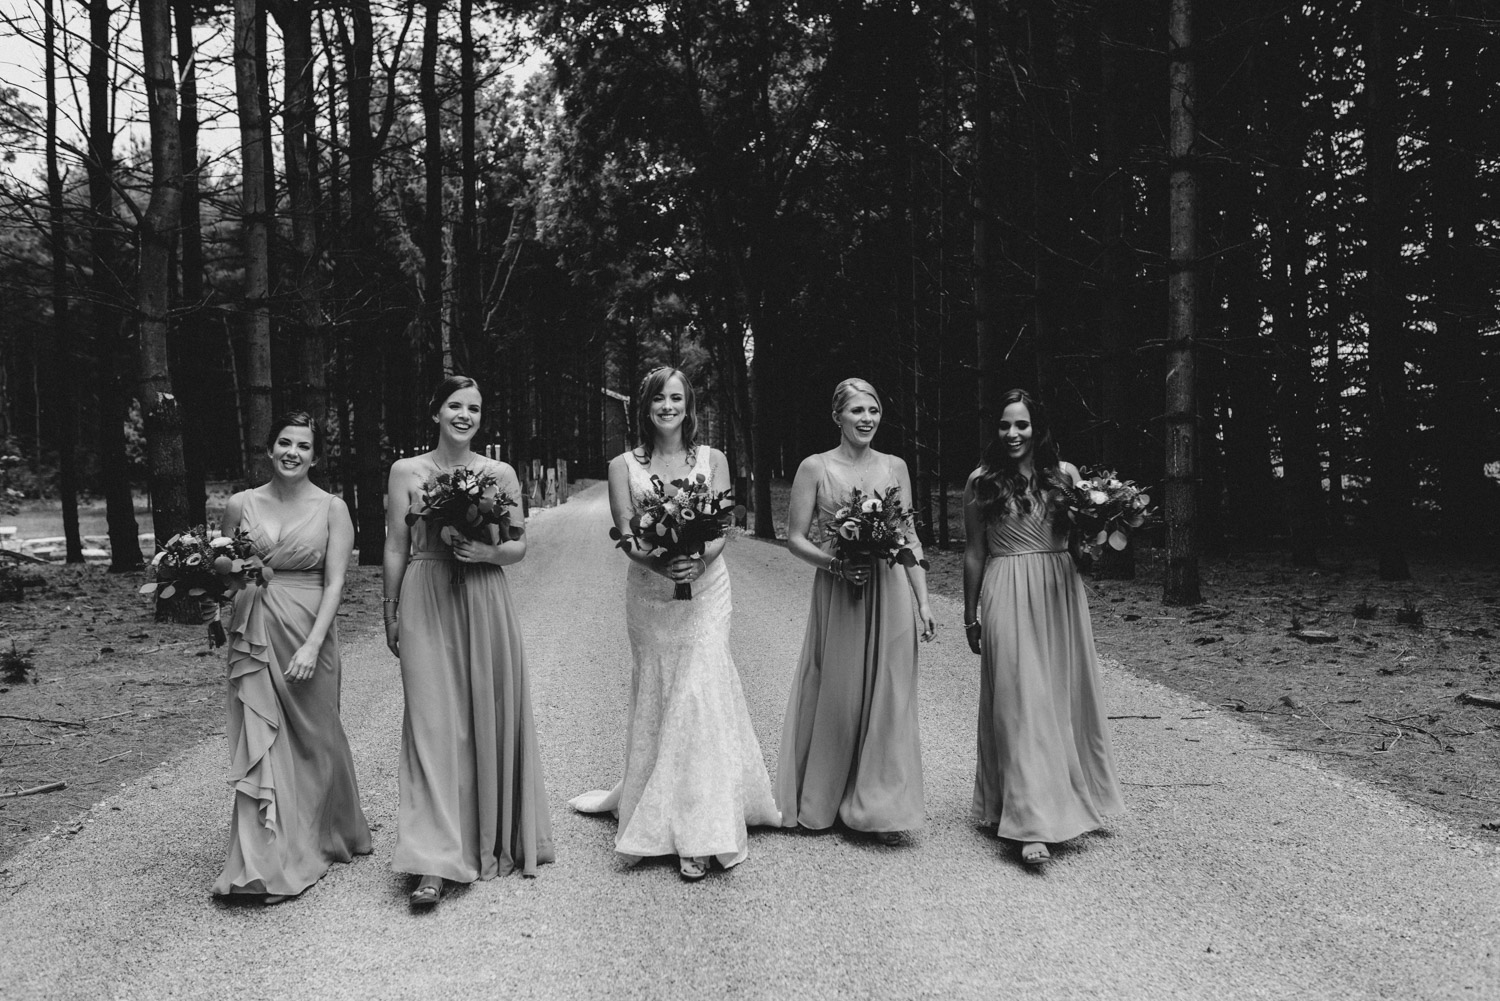 The bridesmaids laughing and walking with their flowers